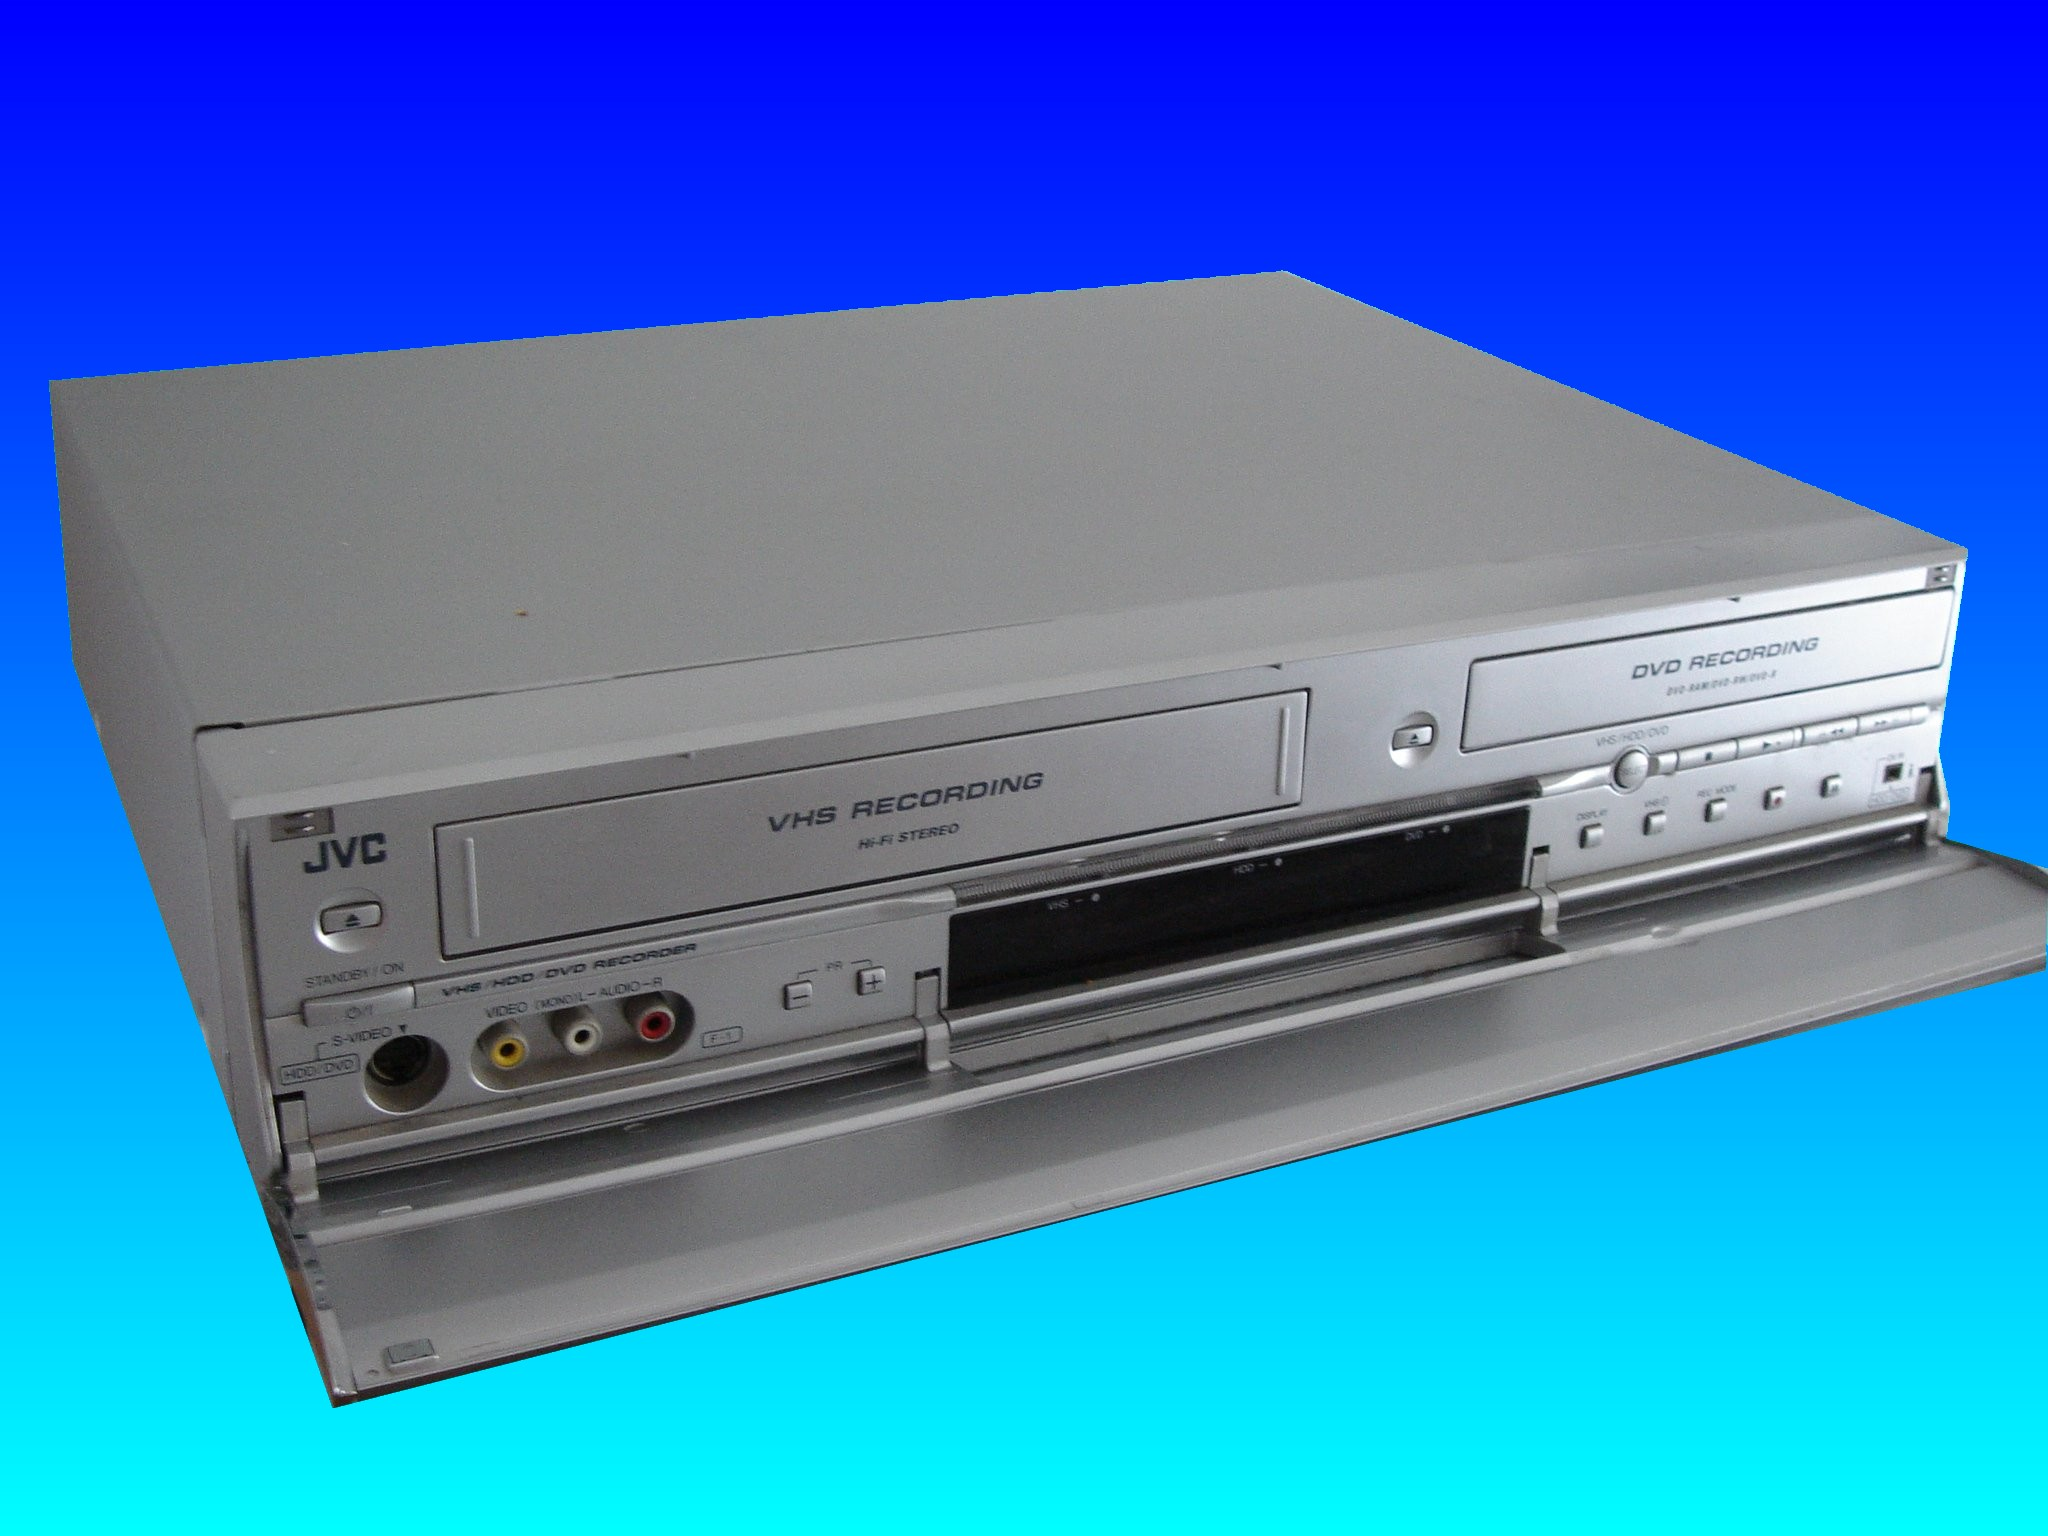 A JVC DR-MX1S Hard Drive Video Recorder which had developed a loading error when powered up. The fault was to do with the power board which malfunctions when turned on. The customer therefore sent it to us to recver the videos to DVD.